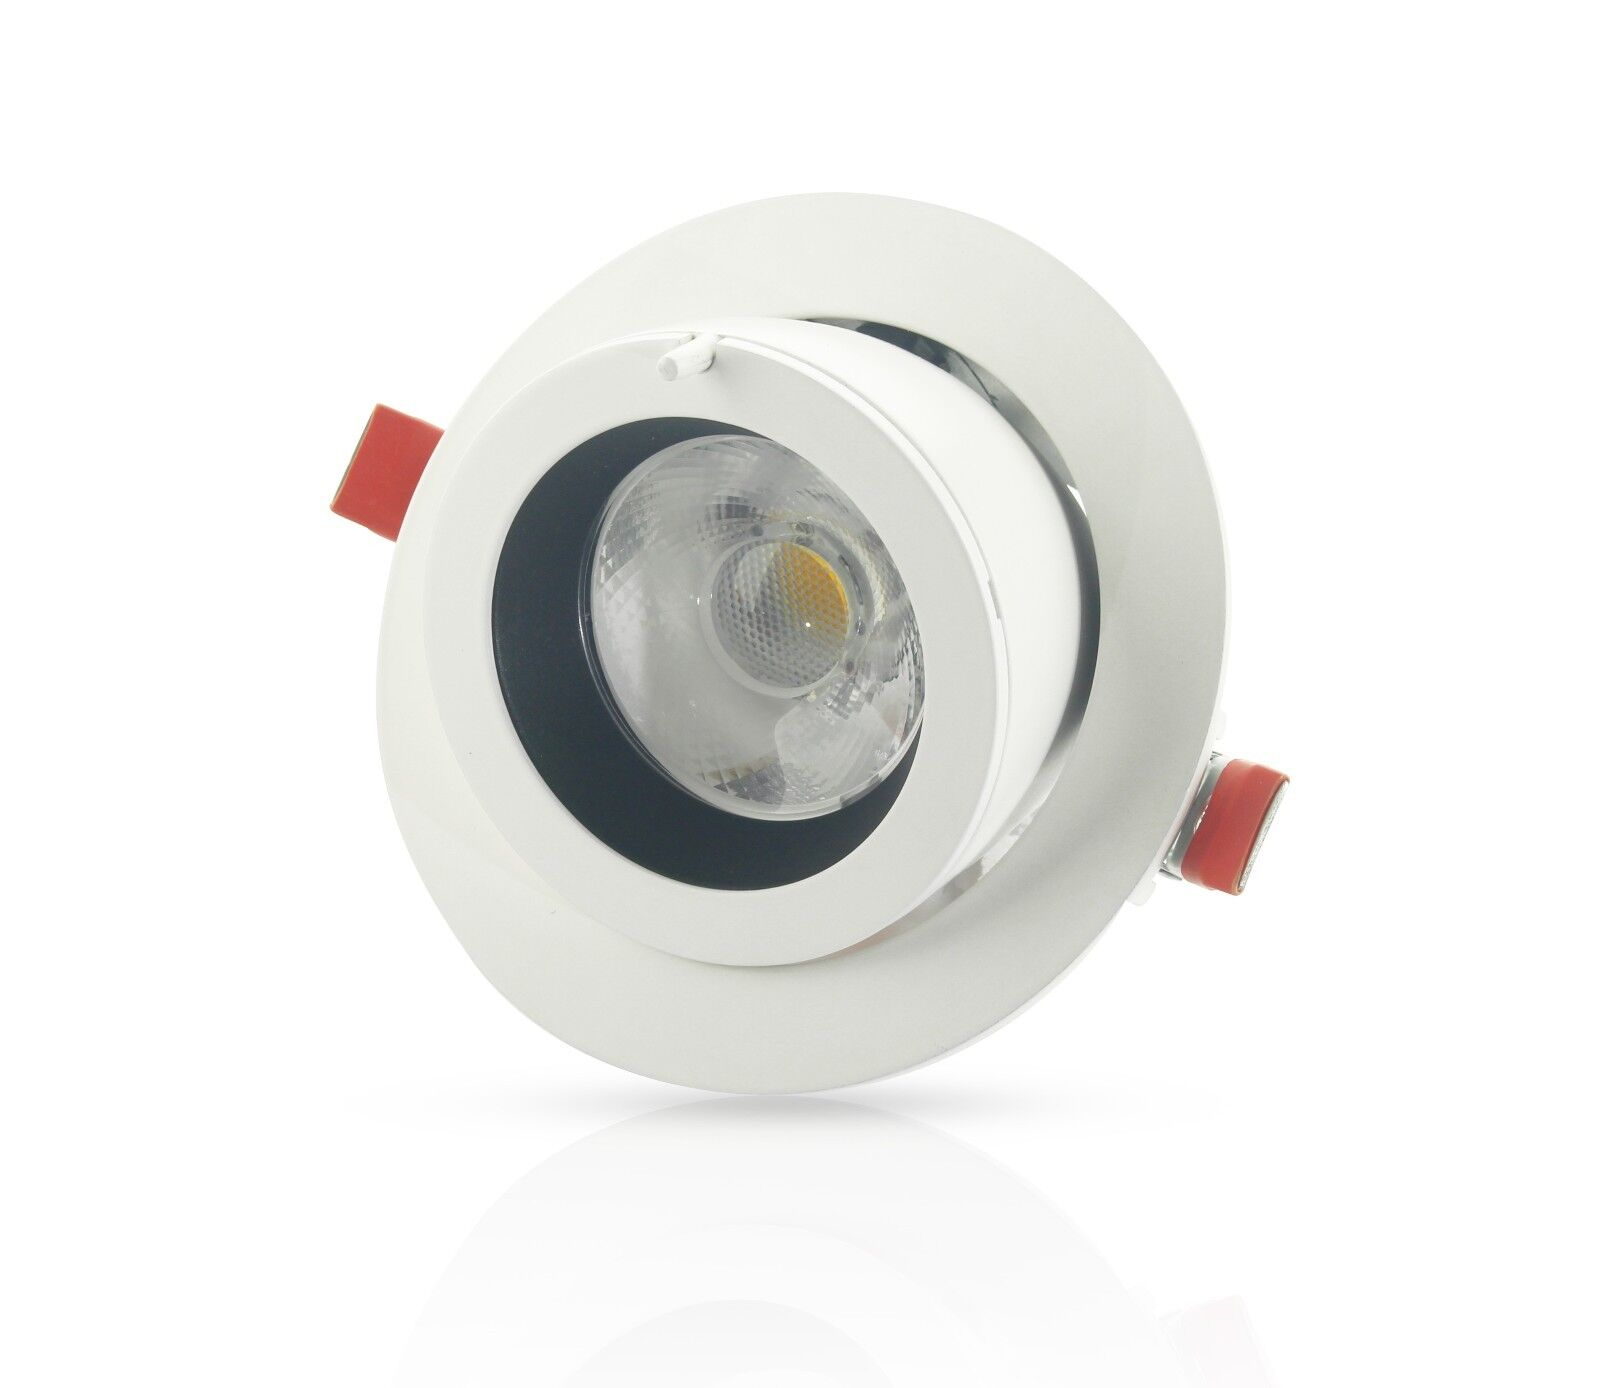 Under Cabinet Led Strip Light Fitting 5w Warm White 303mm: 12v Under Cabinet Round LED Light Fitting 2 Watt Cool